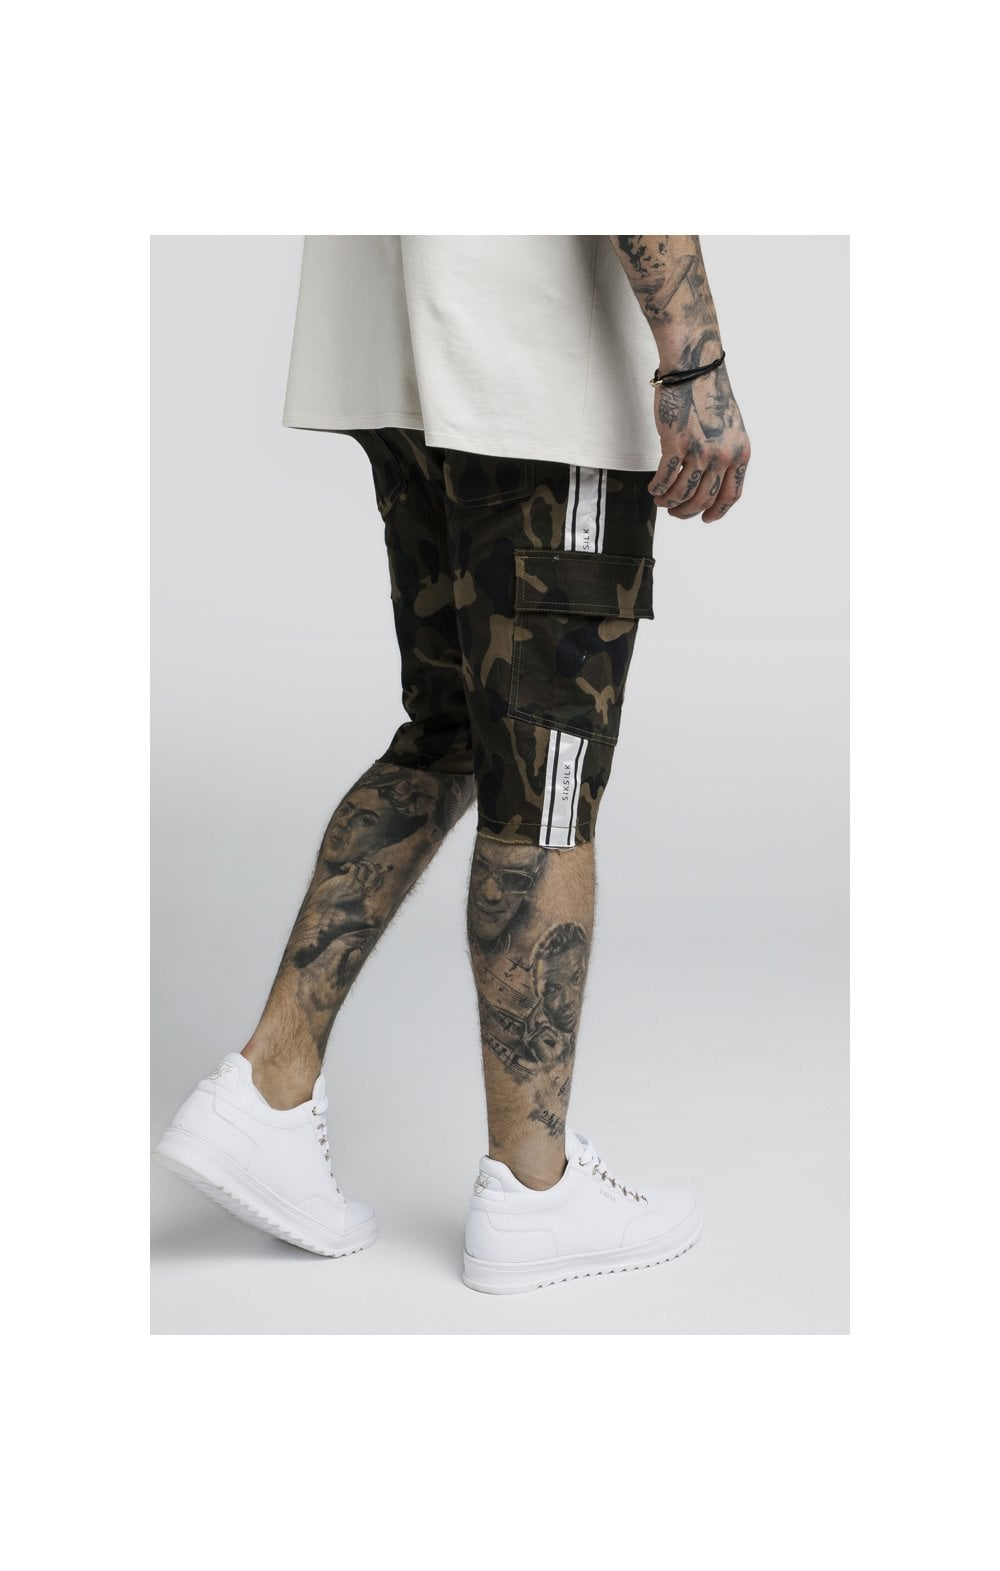 Load image into Gallery viewer, SikSilk Taped Cargo Shorts - Camo (2)